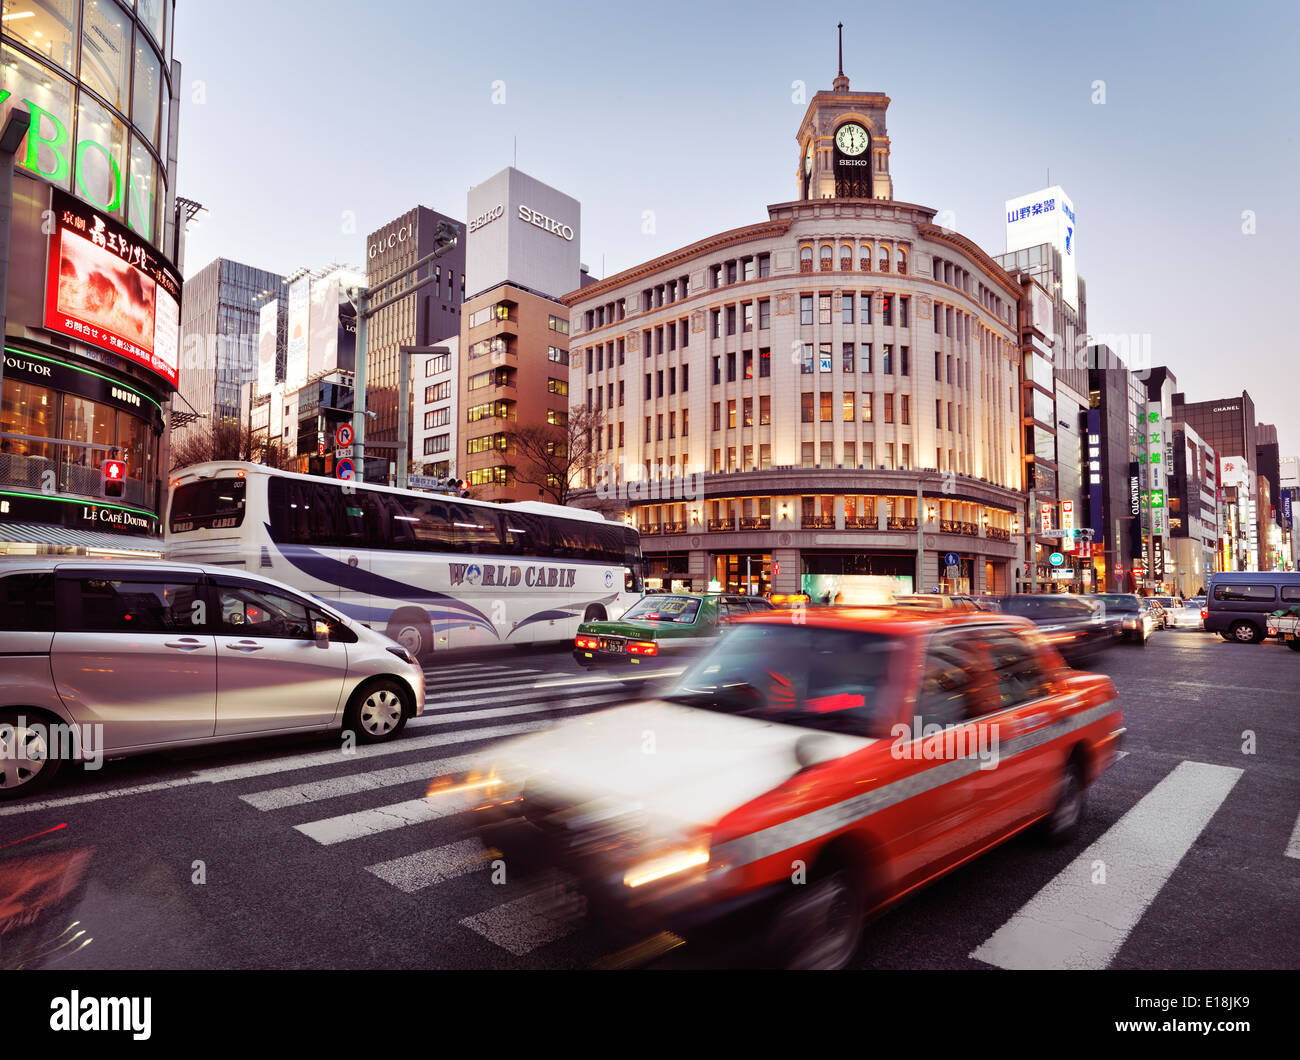 Rush hour city traffic on Chuo Dori street in front of Wako Department Store building in Ginza, Tokyo, Japan 2014. Stock Photo